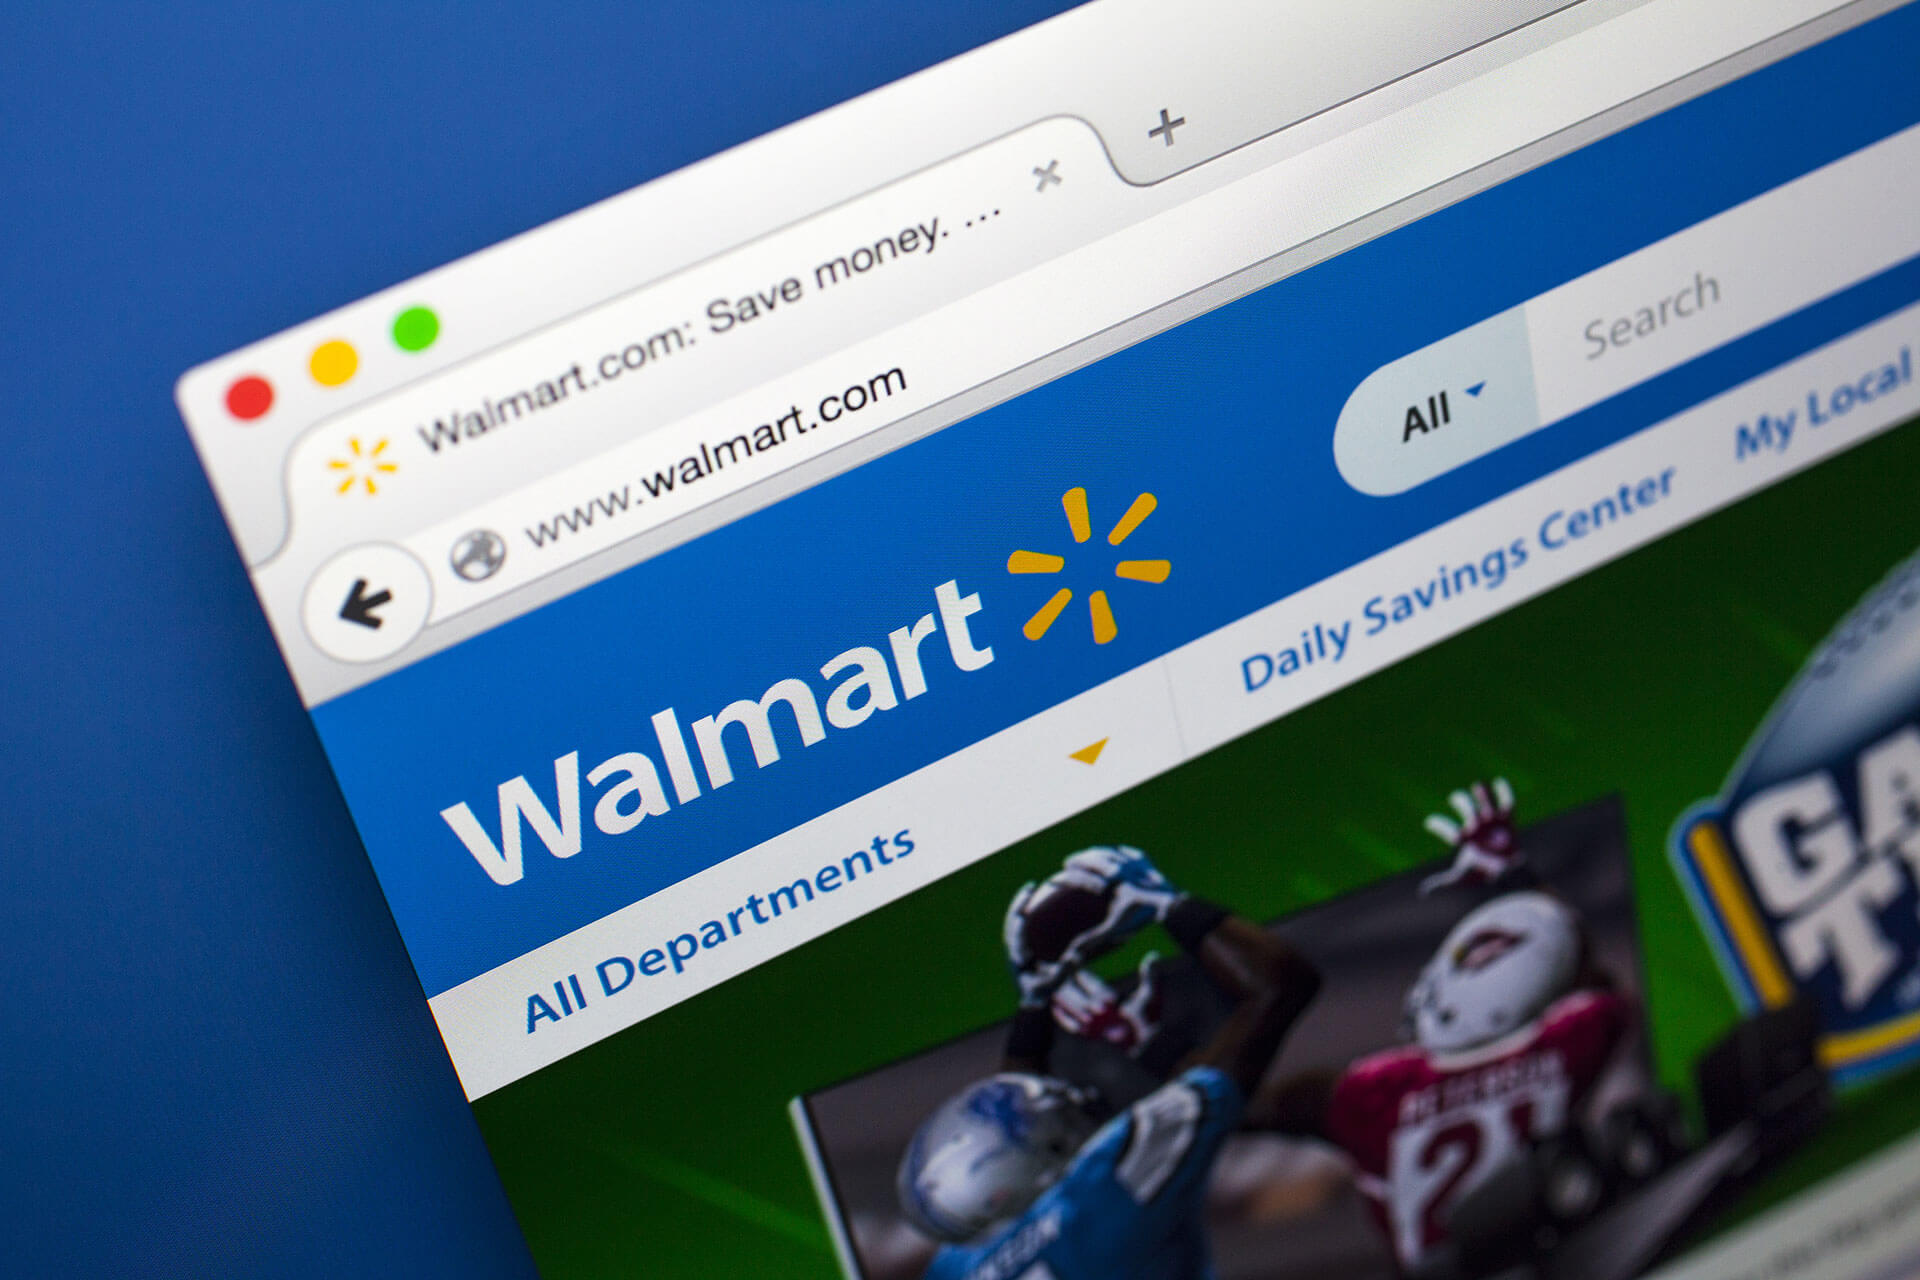 Walmart's website. They got sued for being non-compliant with CCPA.